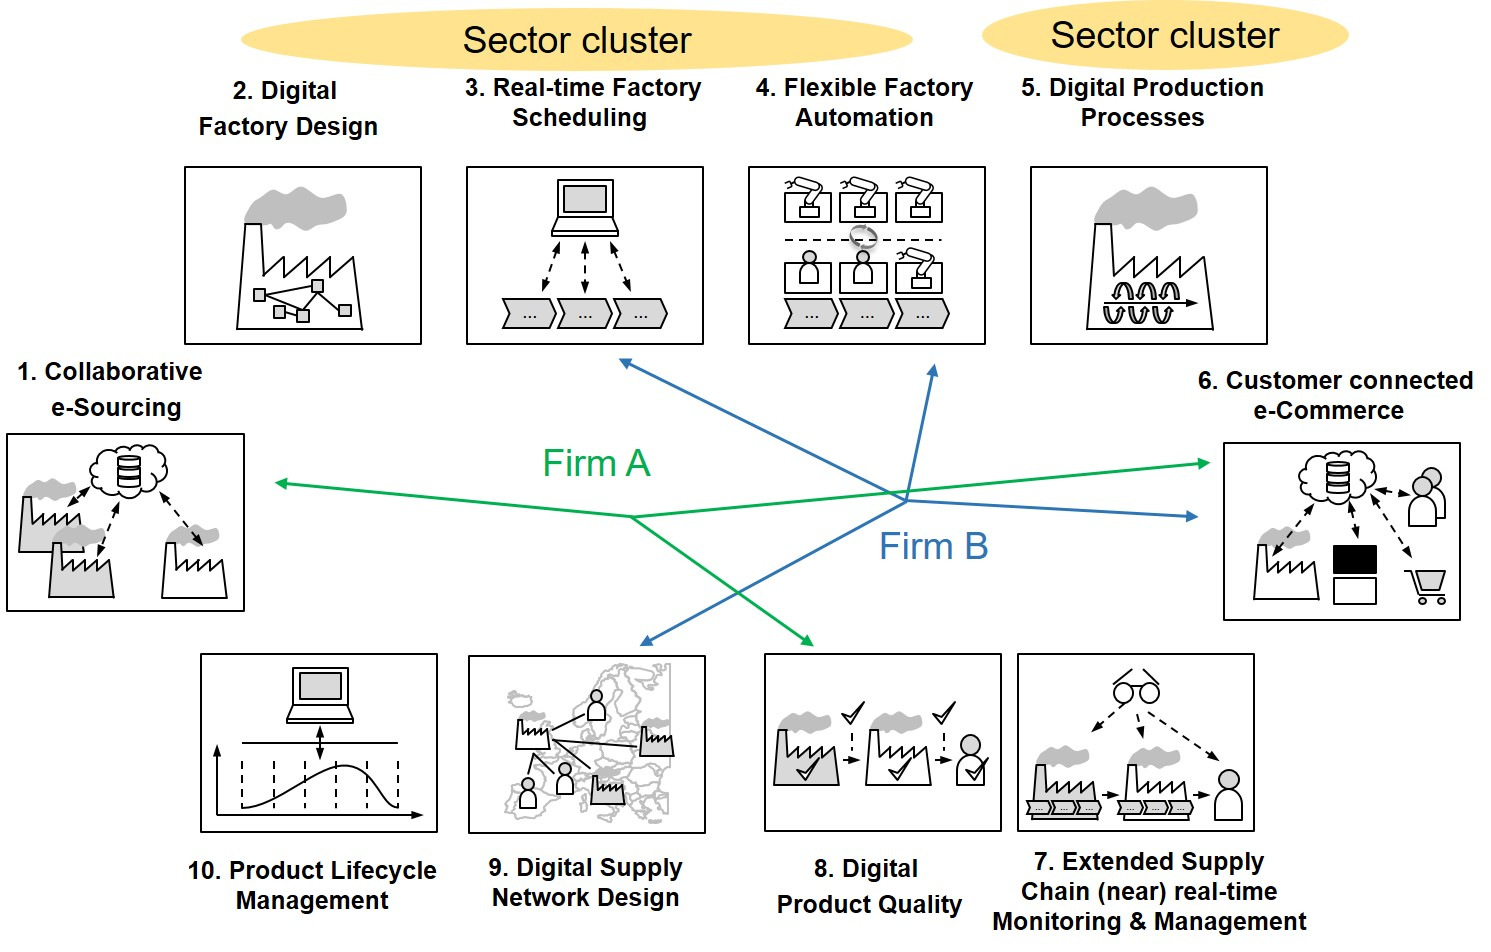 Ten digital supply chain scenarios - hotspots and clusters